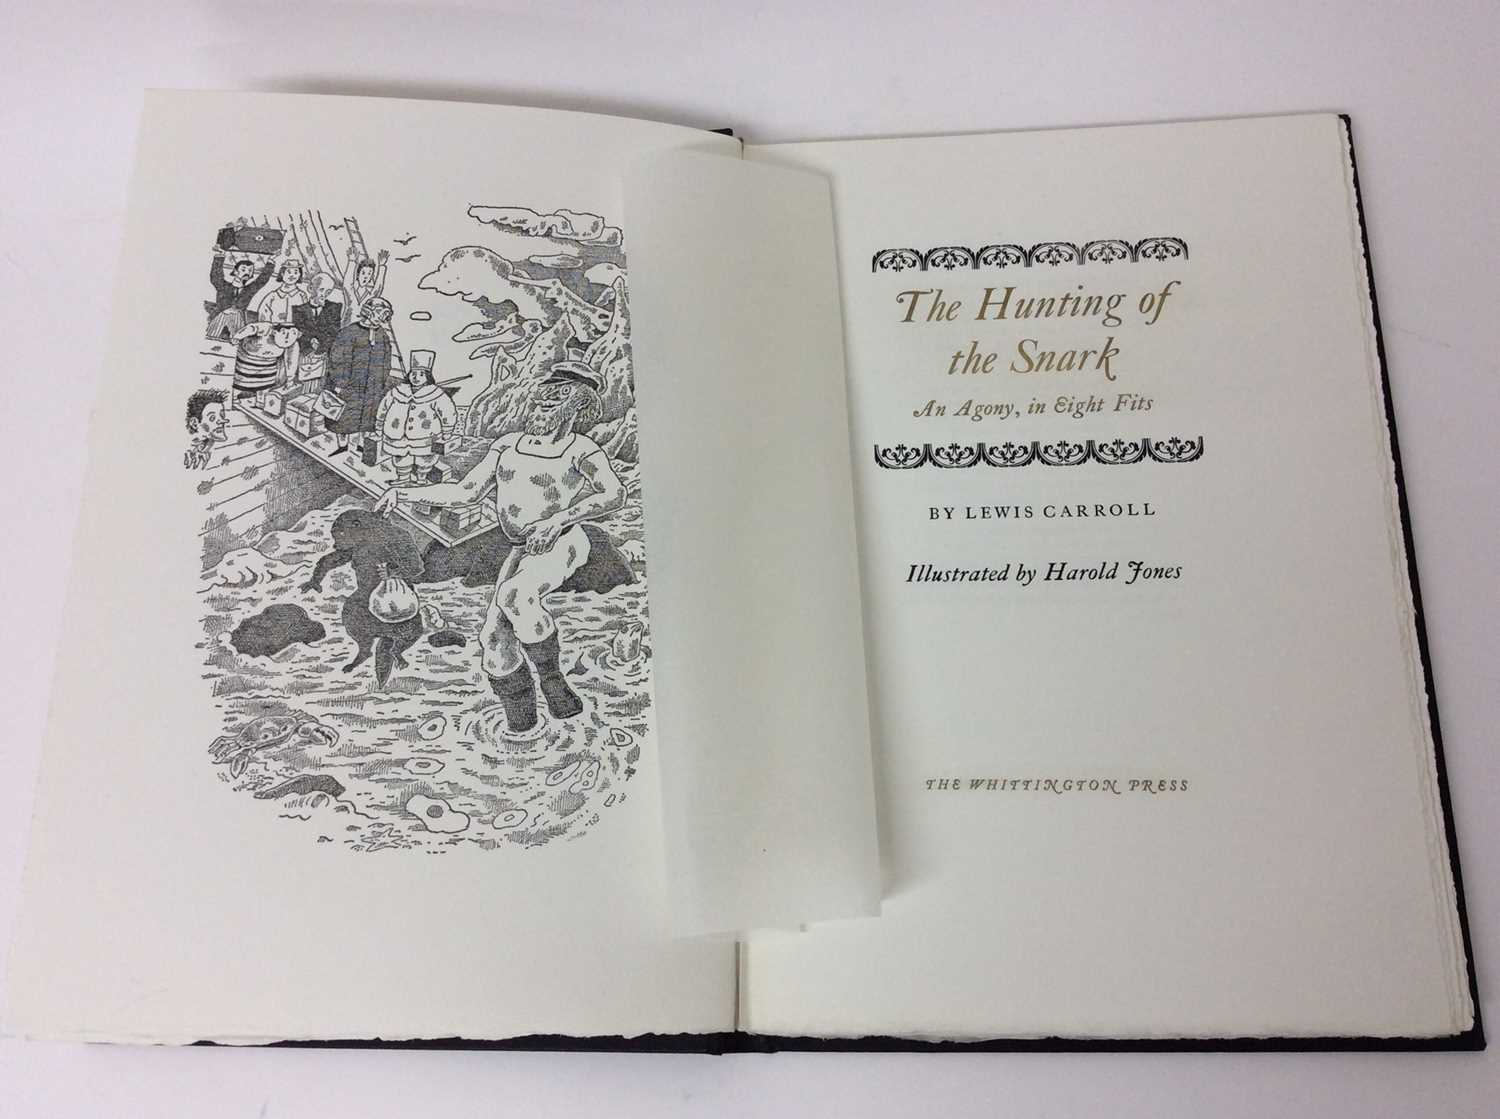 Lewis Carroll - The Hunting of the Snark, Whittington Press 1975, 404/750 - Image 3 of 10